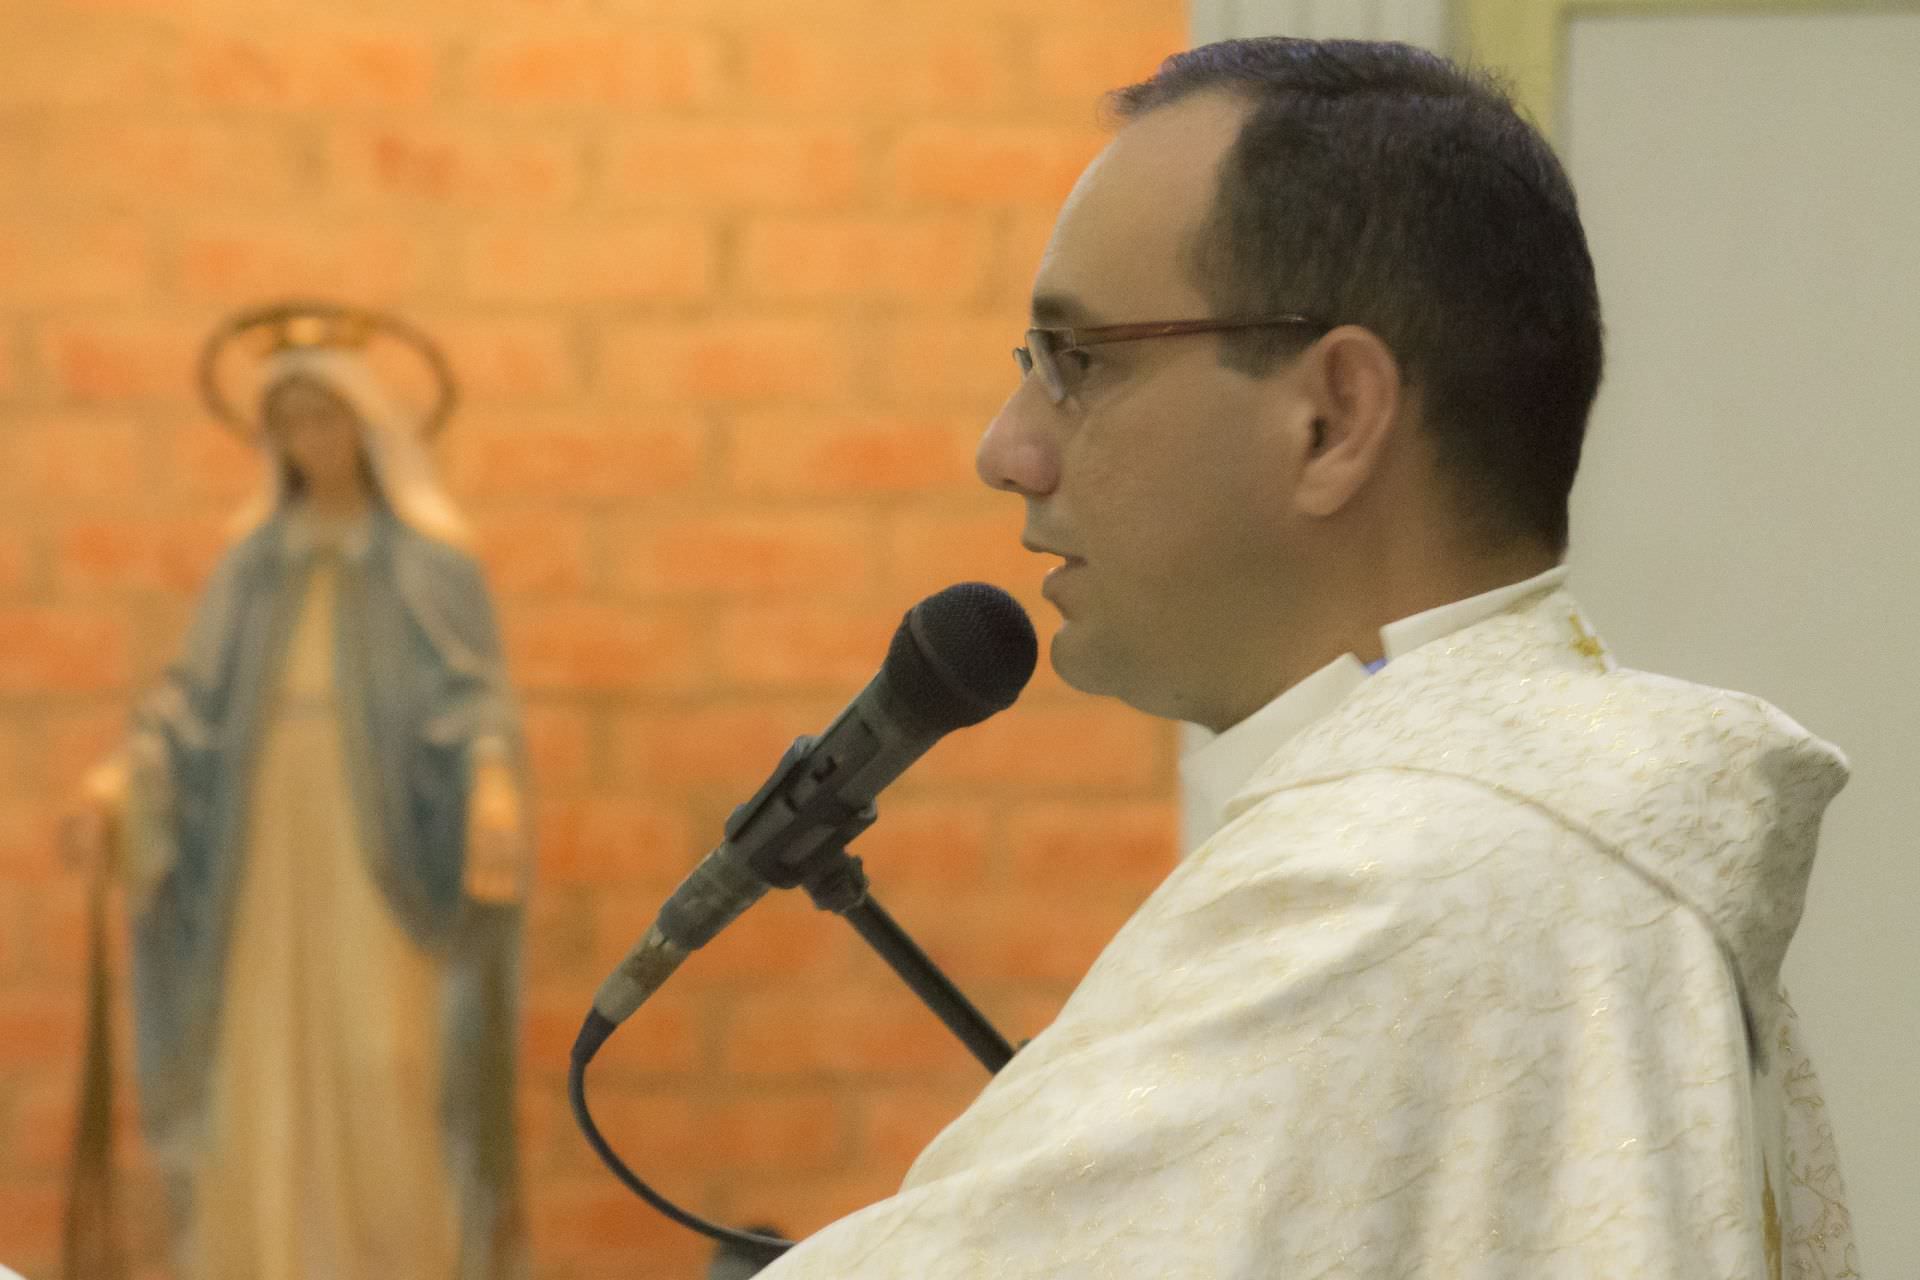 priest, gospel, homily, care, seems, chat, mass, eucharistic celebration, mass, rite, thanksgiving